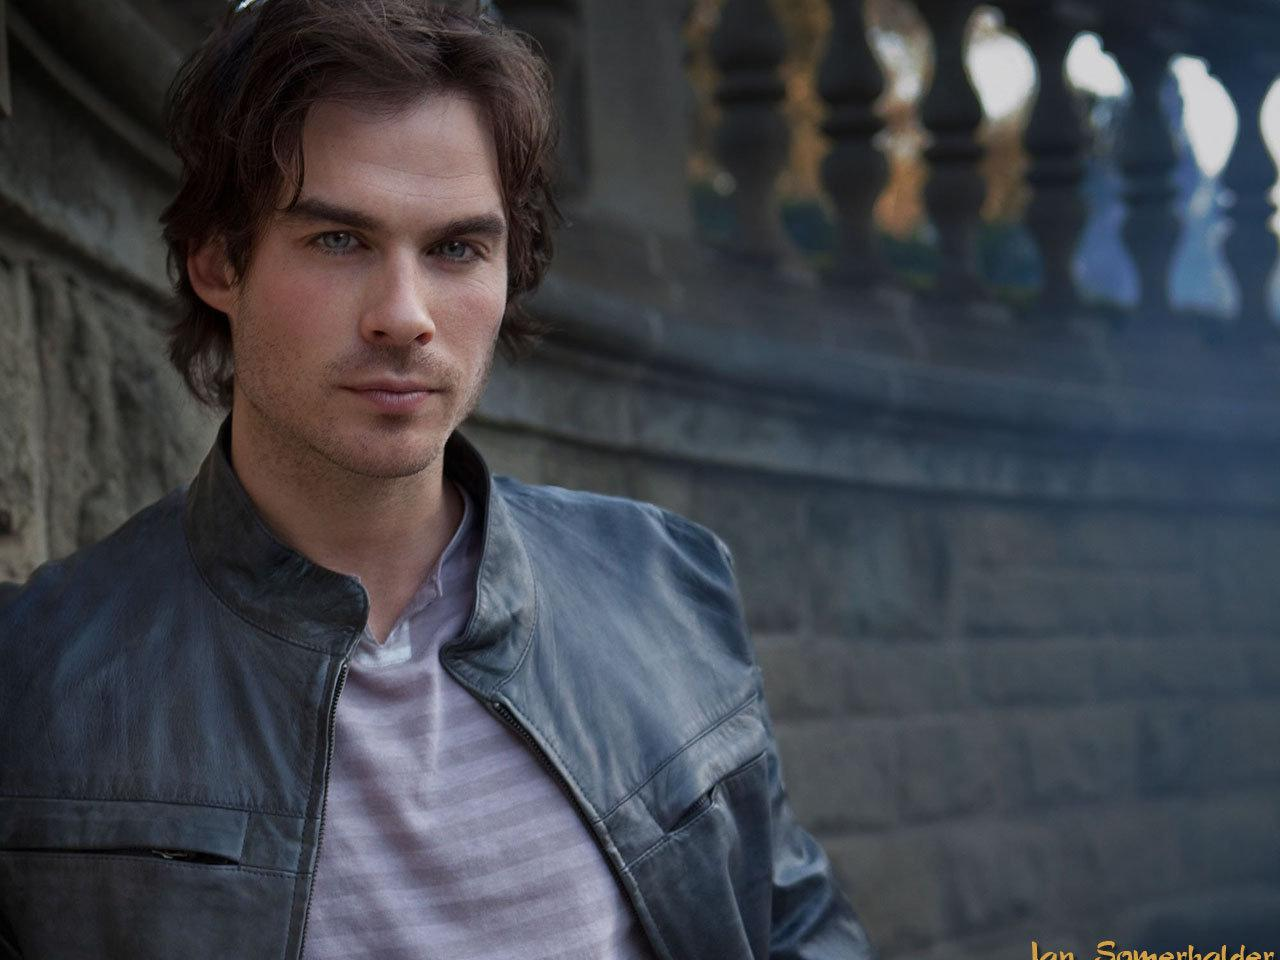 the vampire diaries guy ian somerhalder man 1280x960 hd wallpaper 330454 - About us